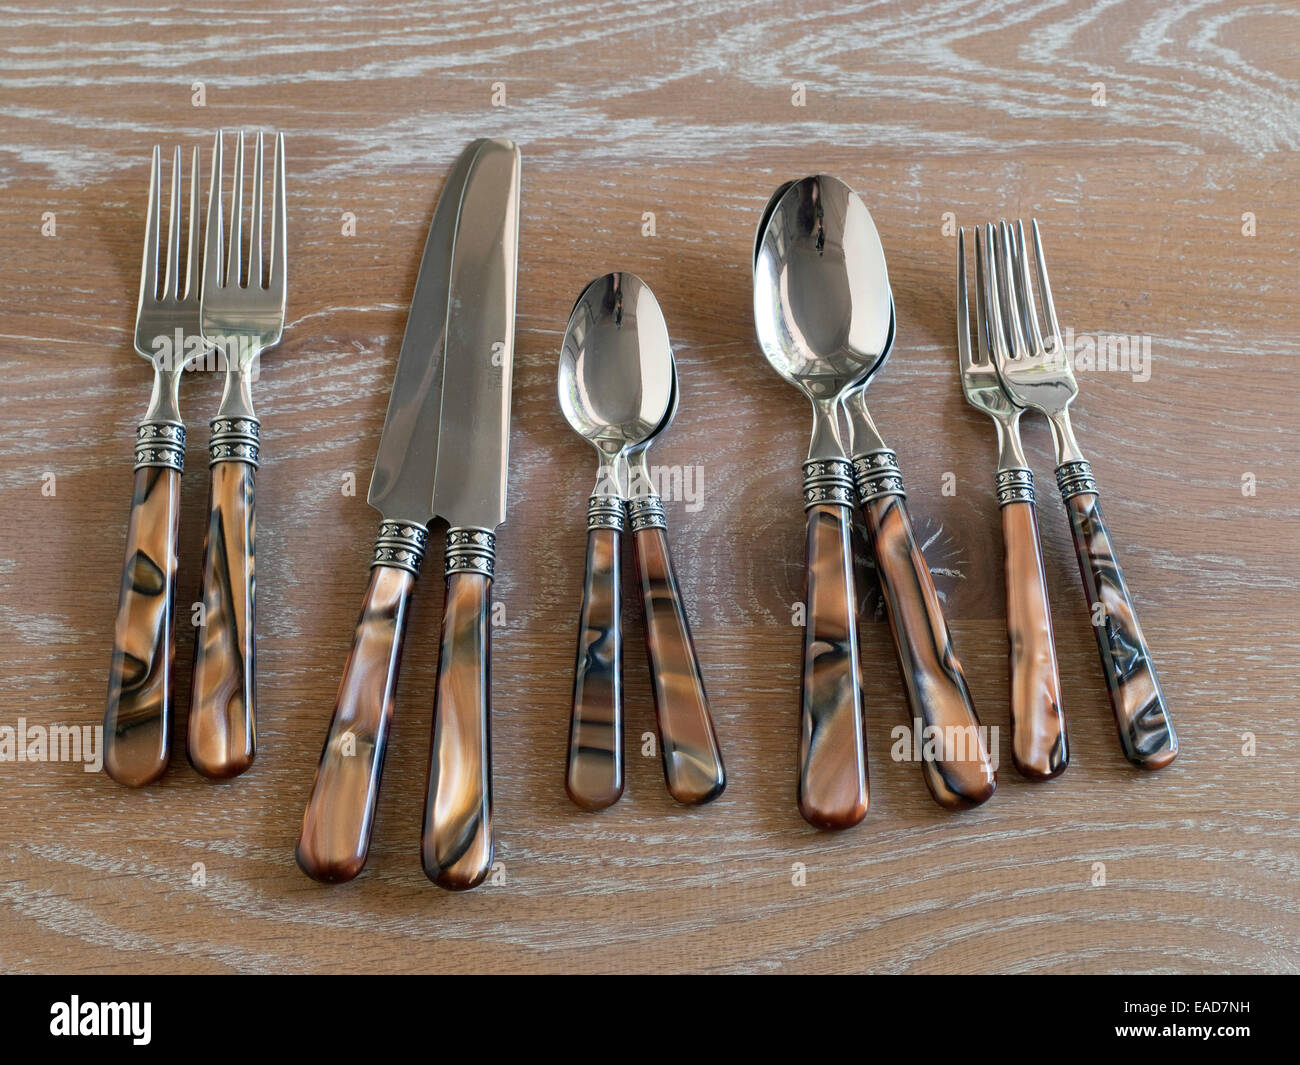 Flatware on wood table surface - Stock Image